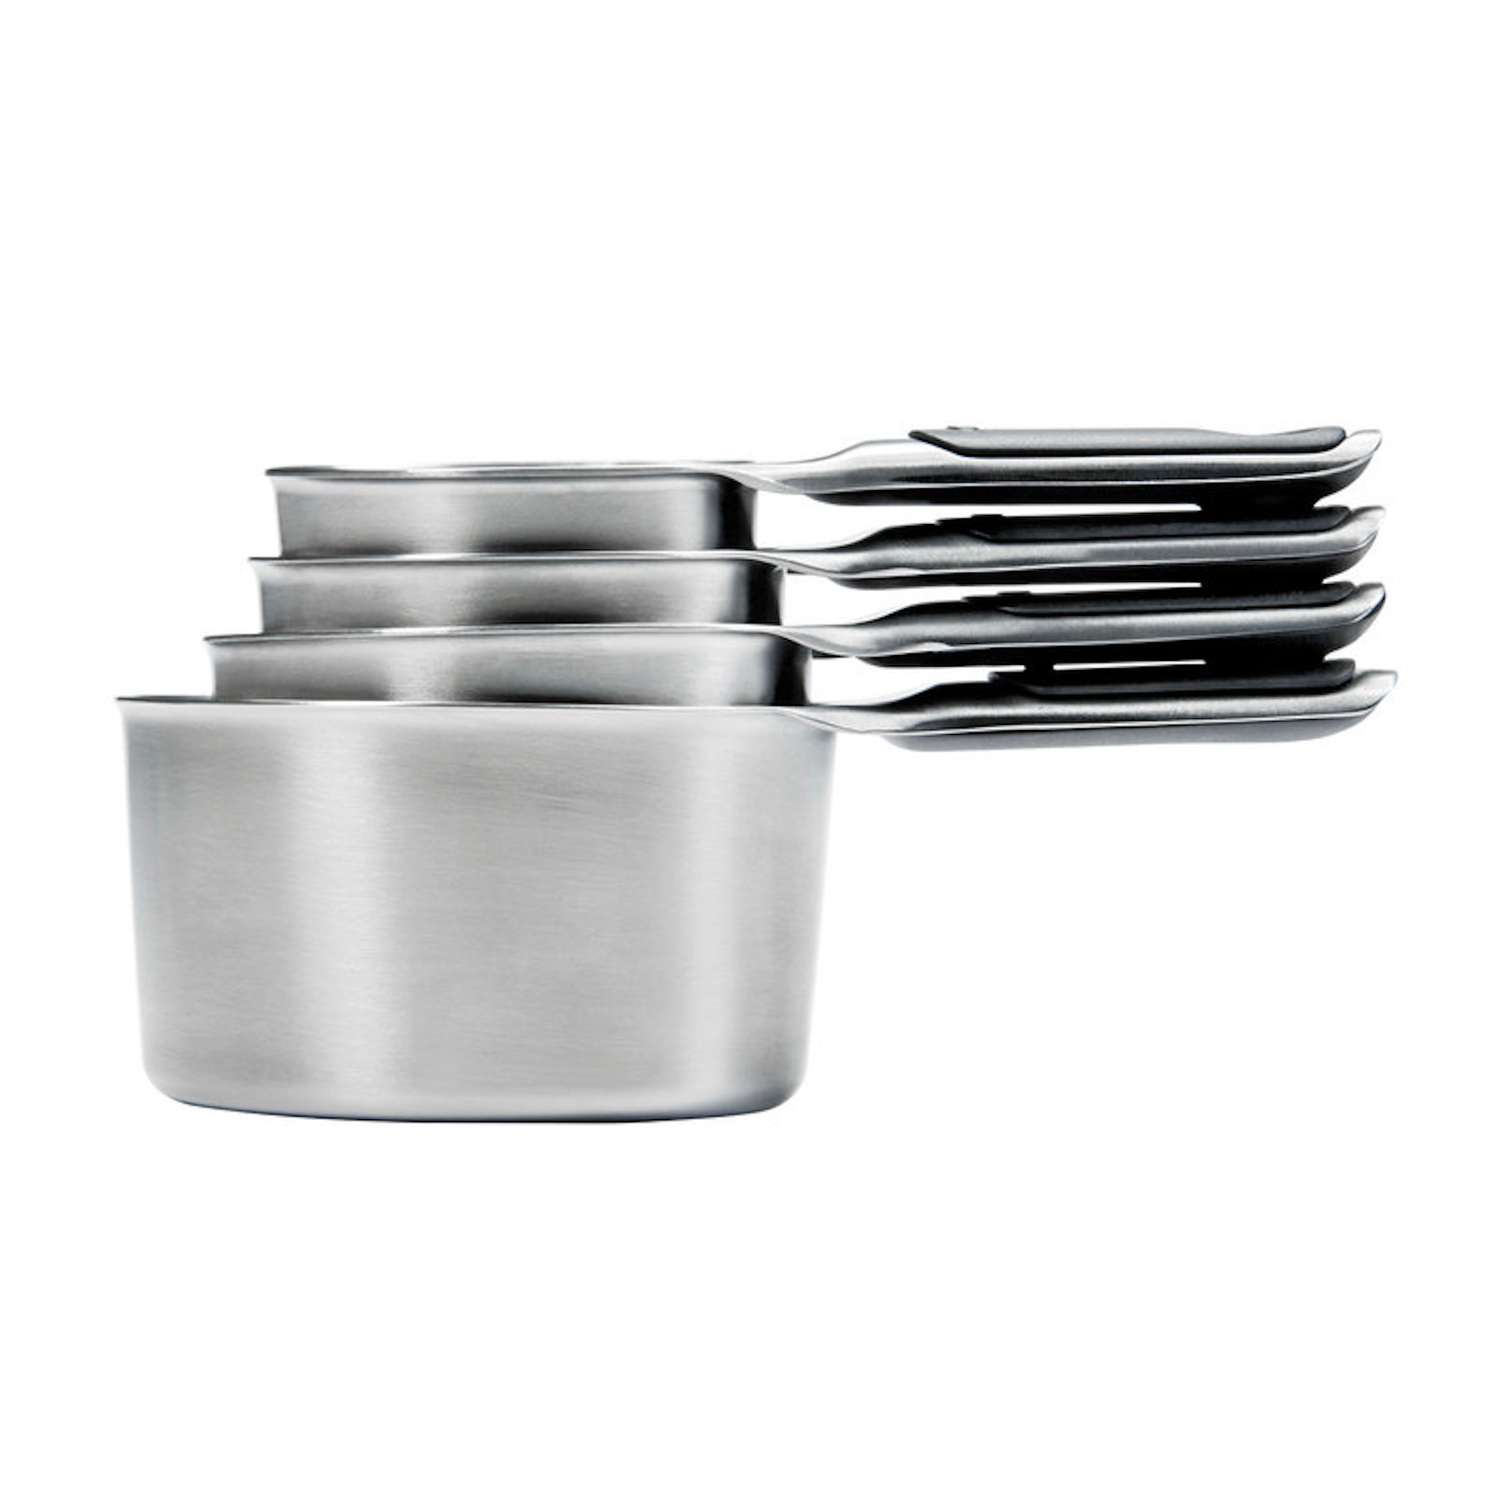 OXO  Good Grips  1/4, 1/3, 1/2 , 1 cups Stainless Steel  Silver  Measuring Cup